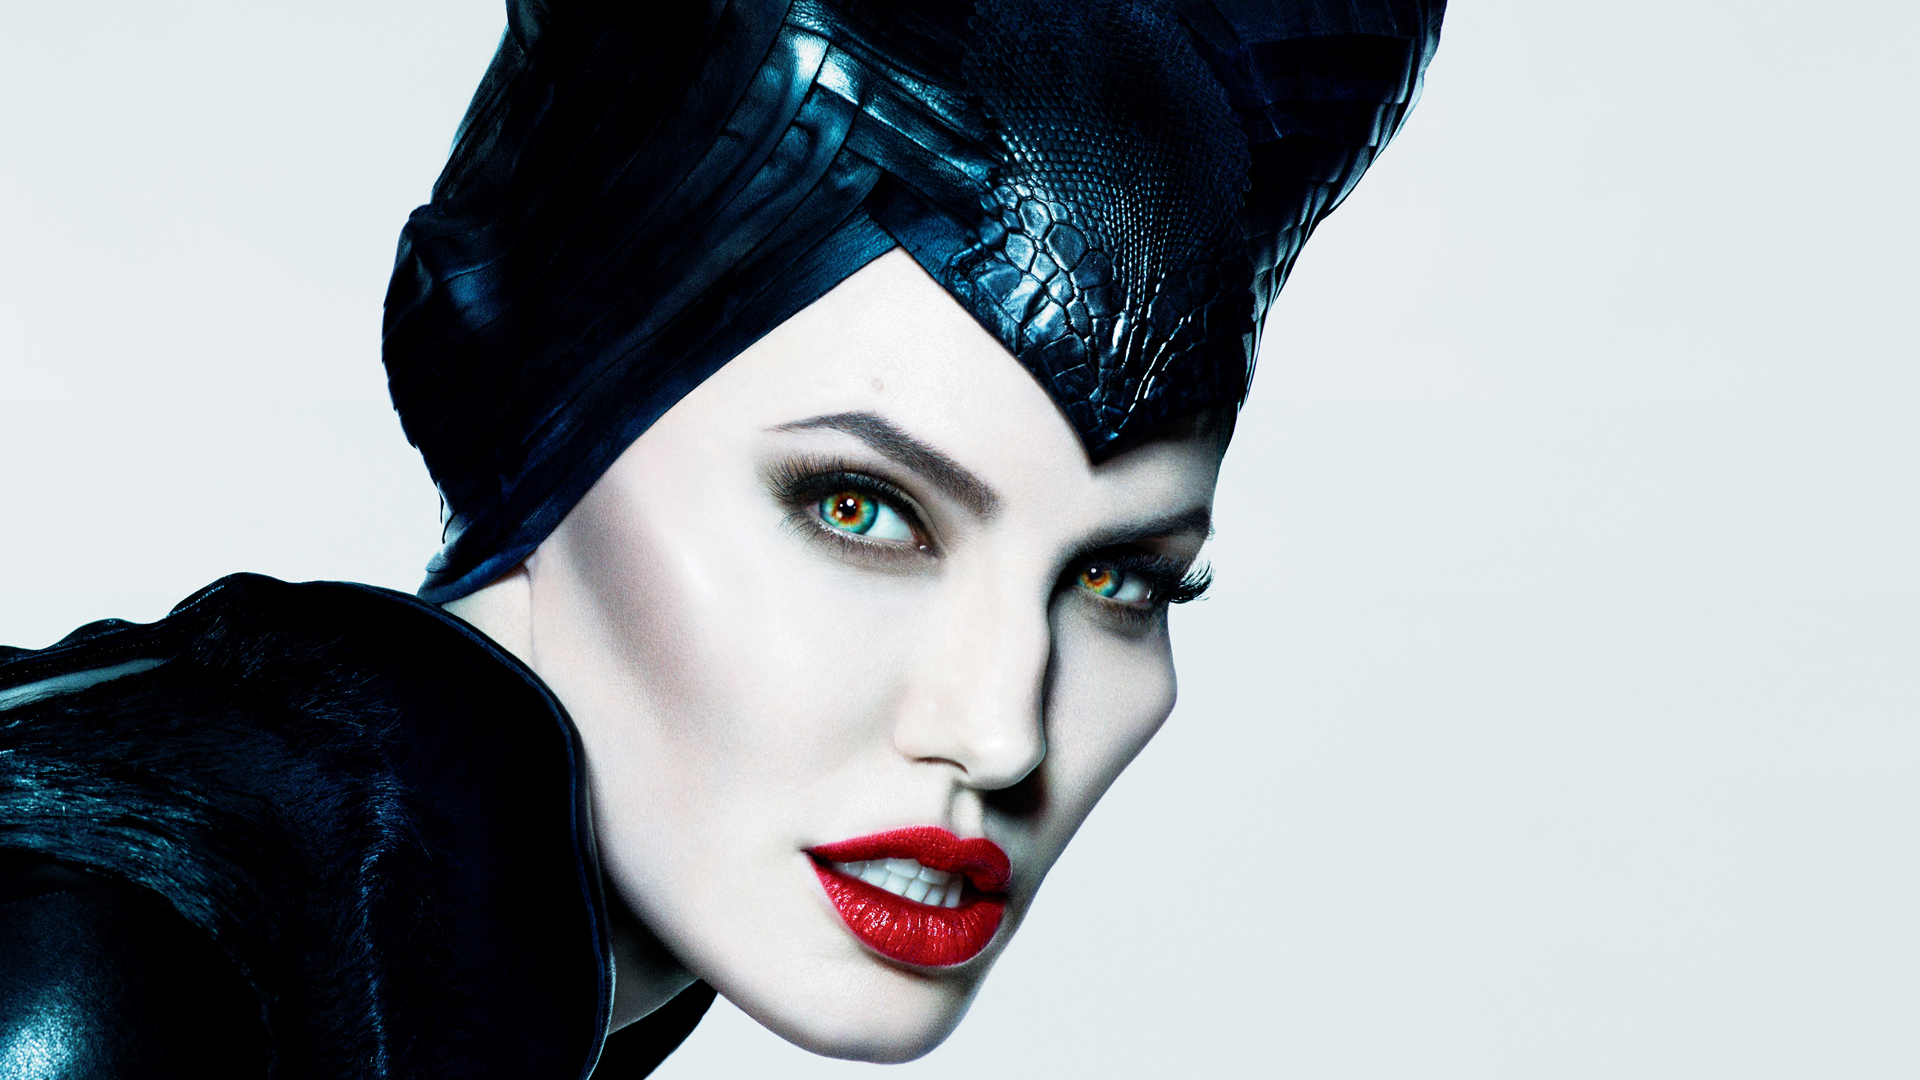 Watch MAC Maleficent Makeup Collection 2014 video